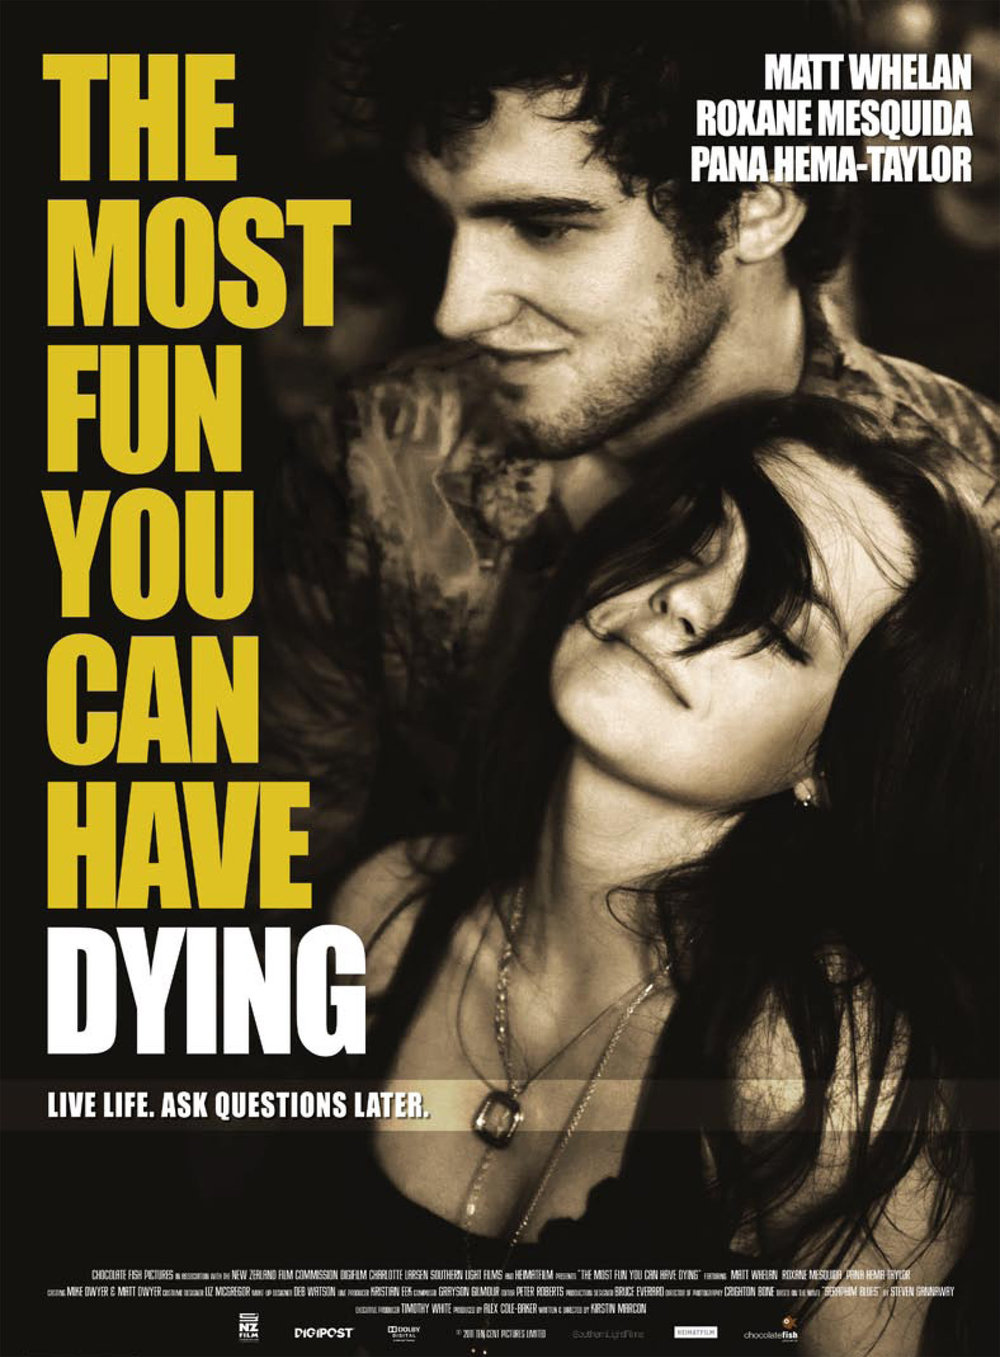 The Most Fun You Can Have Dying   NZ Feature Film